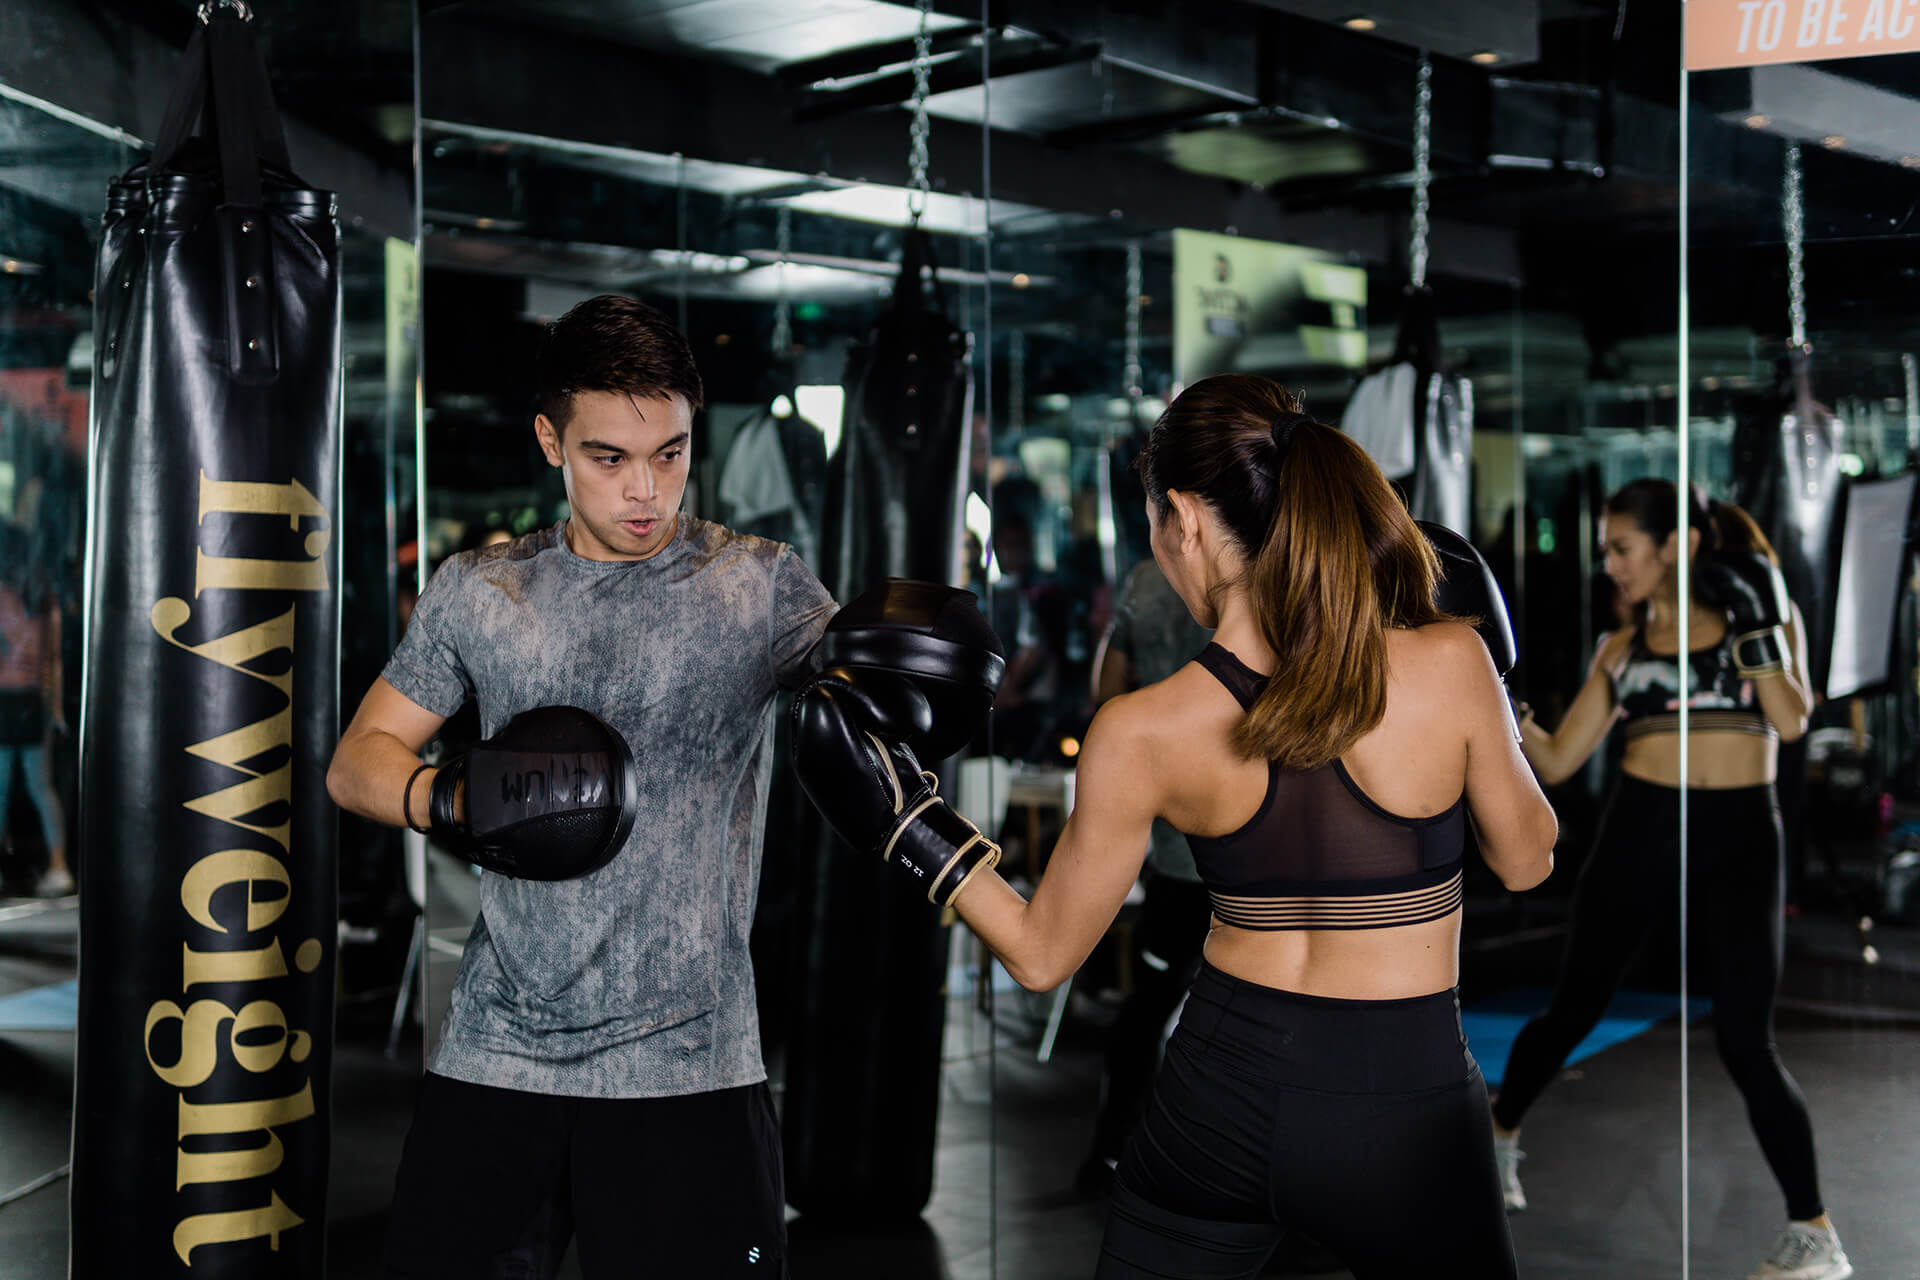 A sharp action shot of a male and female boxer sparring in front of glass mirrors.